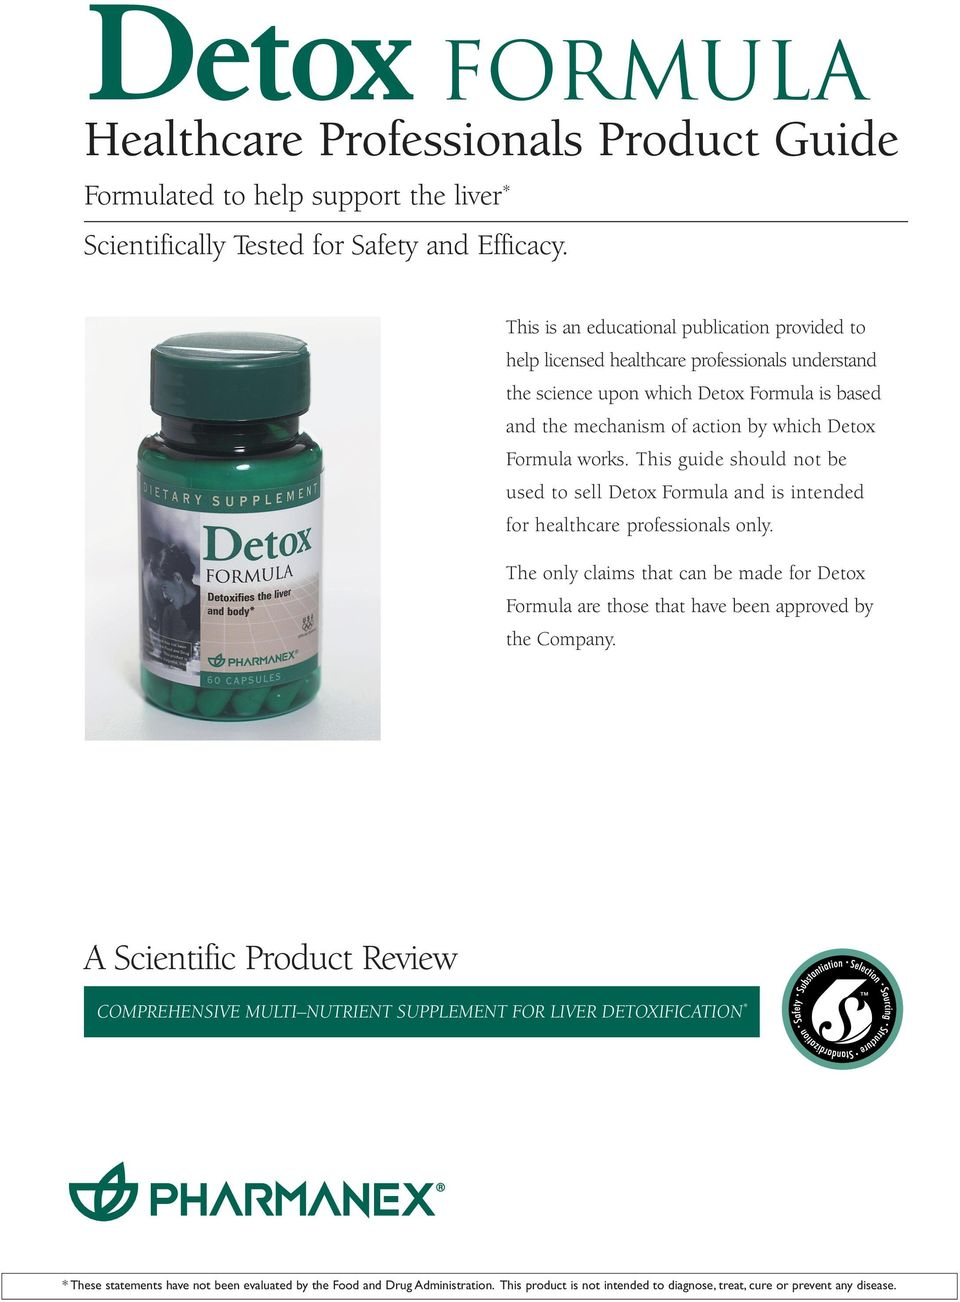 This guide should not be used to sell Detox Formula and is intended for healthcare professionals only.